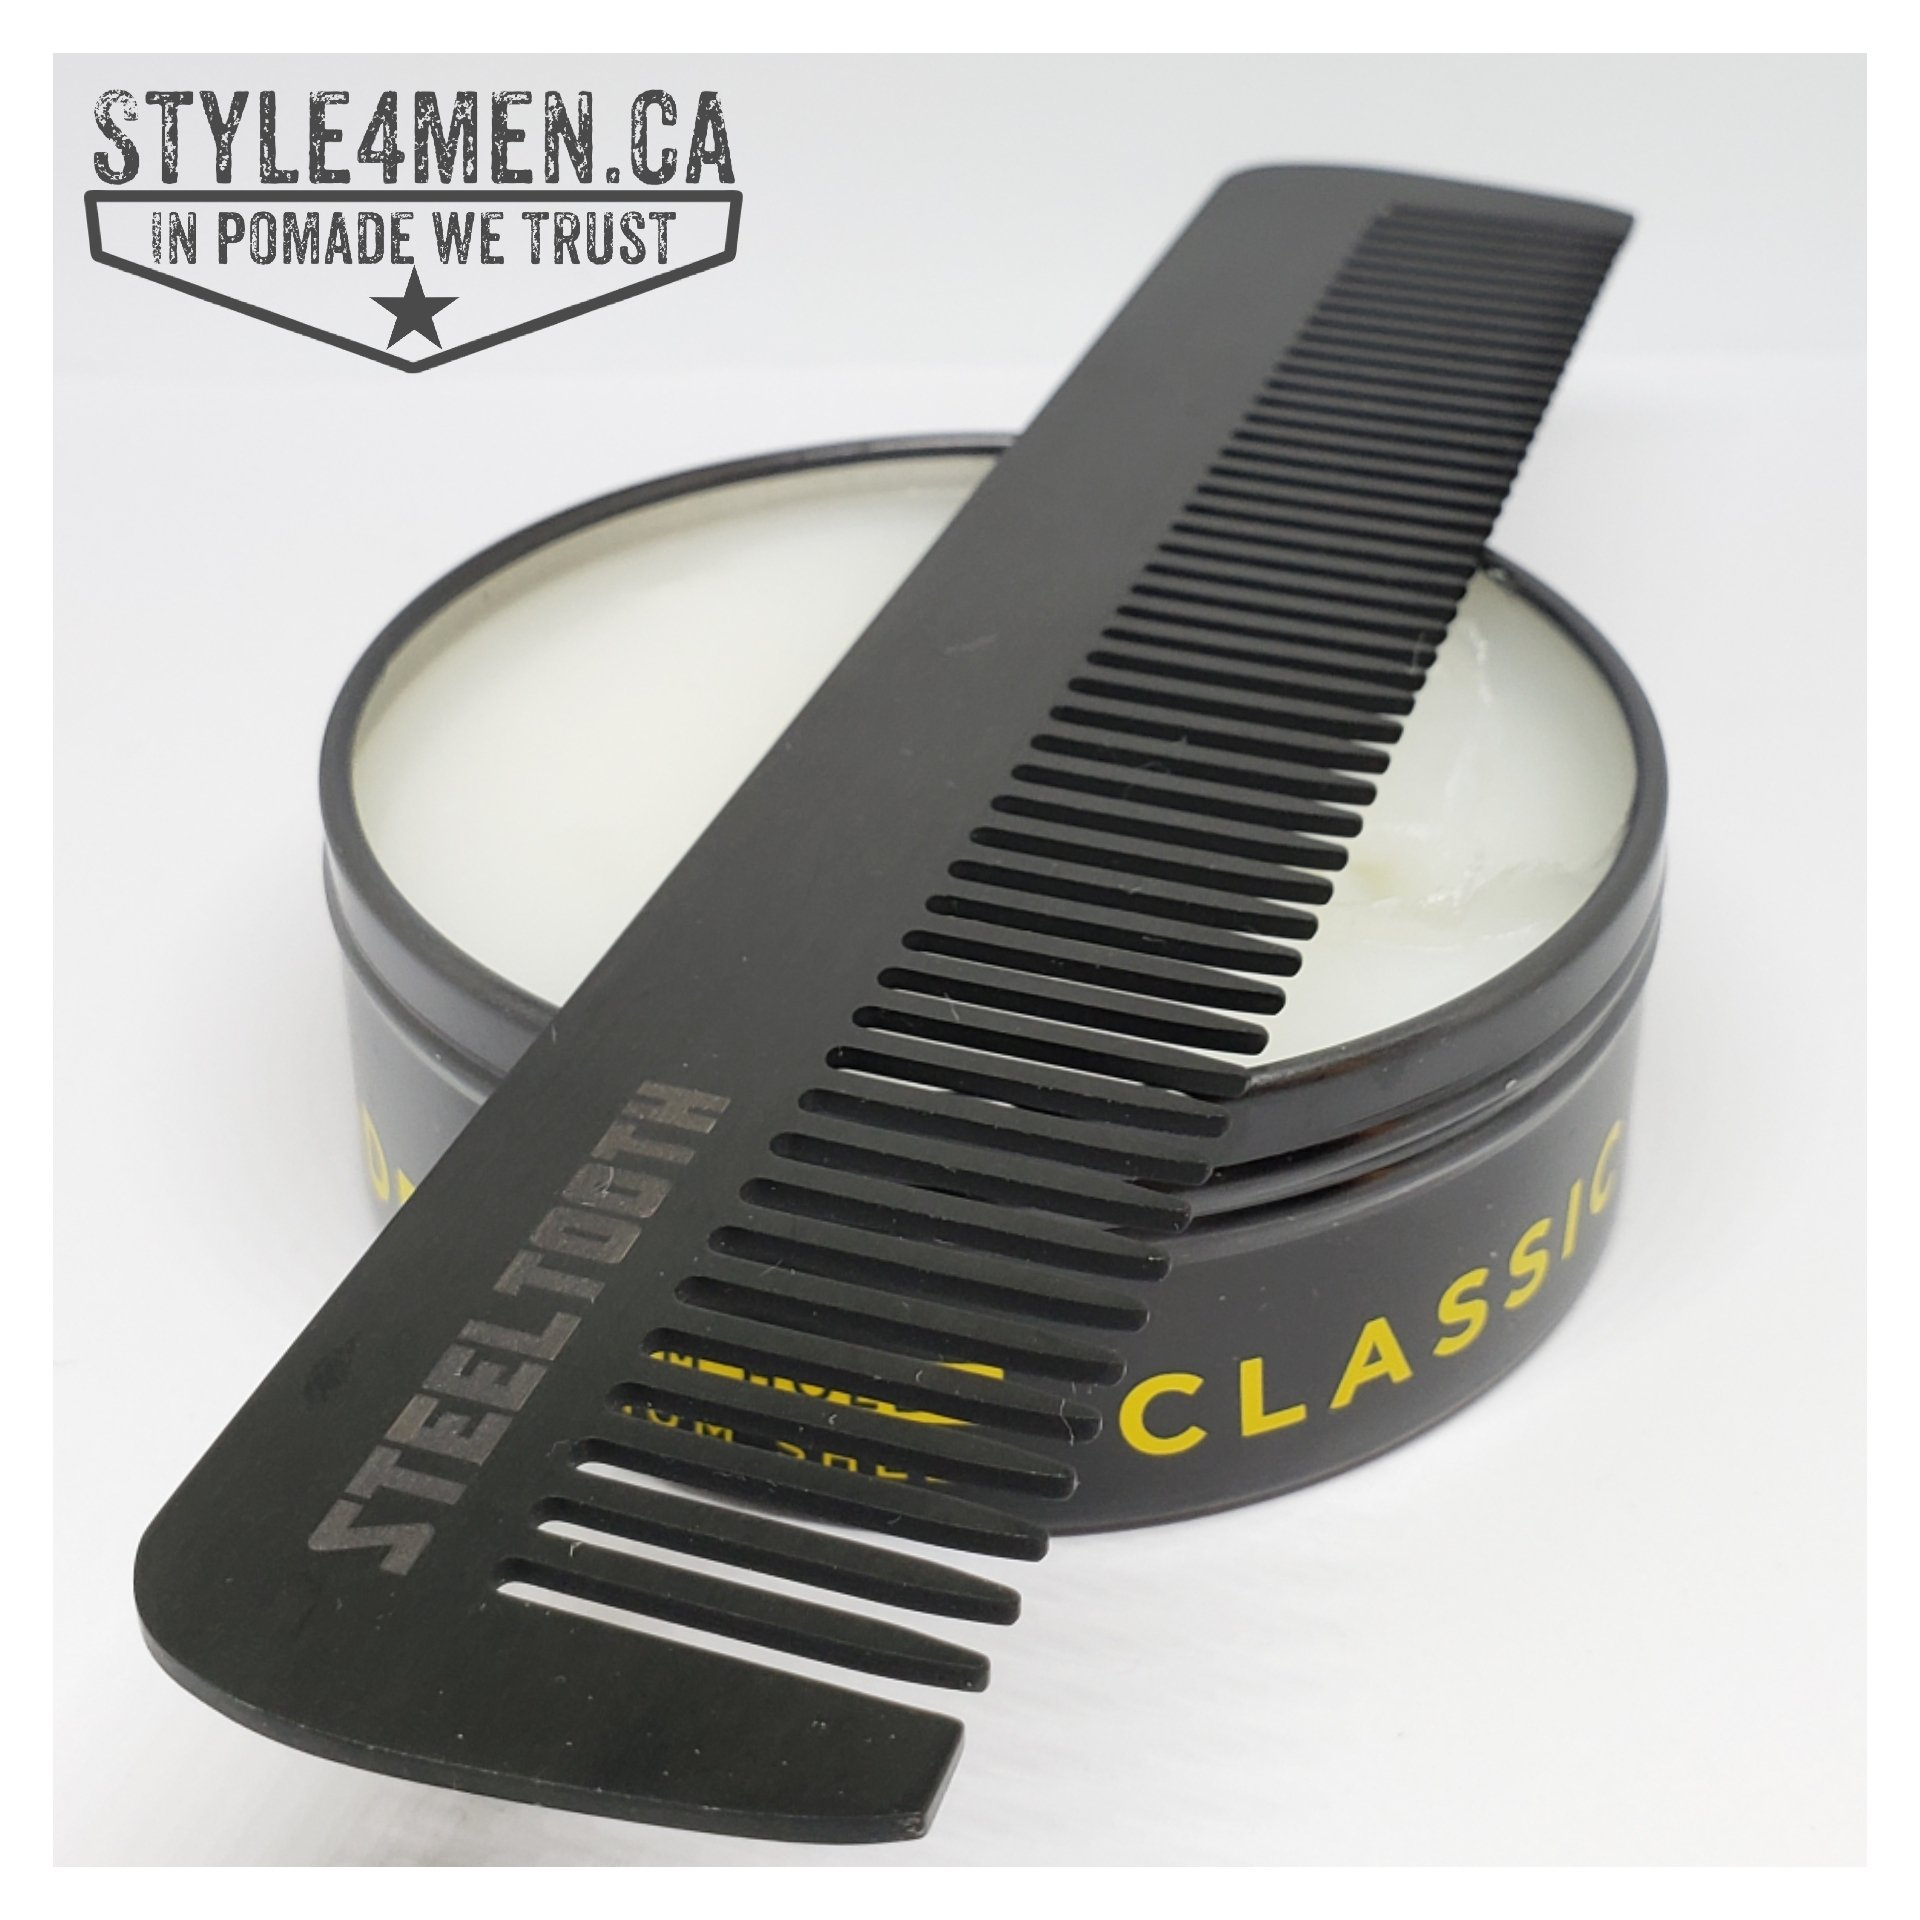 The all steel anti-static Comb by Steel Tooth